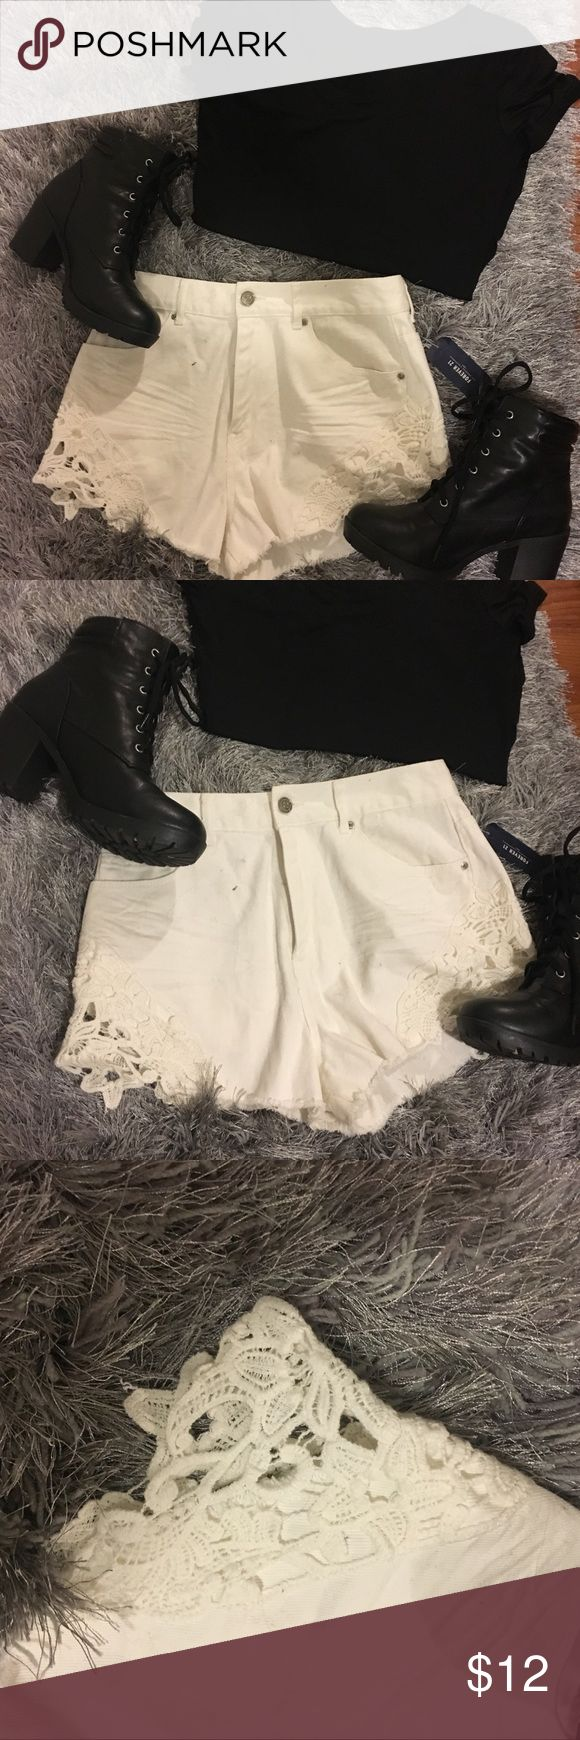 NEW White Lace Jean Shorts Brand new with tags. So cute! Tight fit on the waist (true to 26) and a baggy cutoff look. White lace trim on the bottoms. Jean material. Forever 21 Shorts